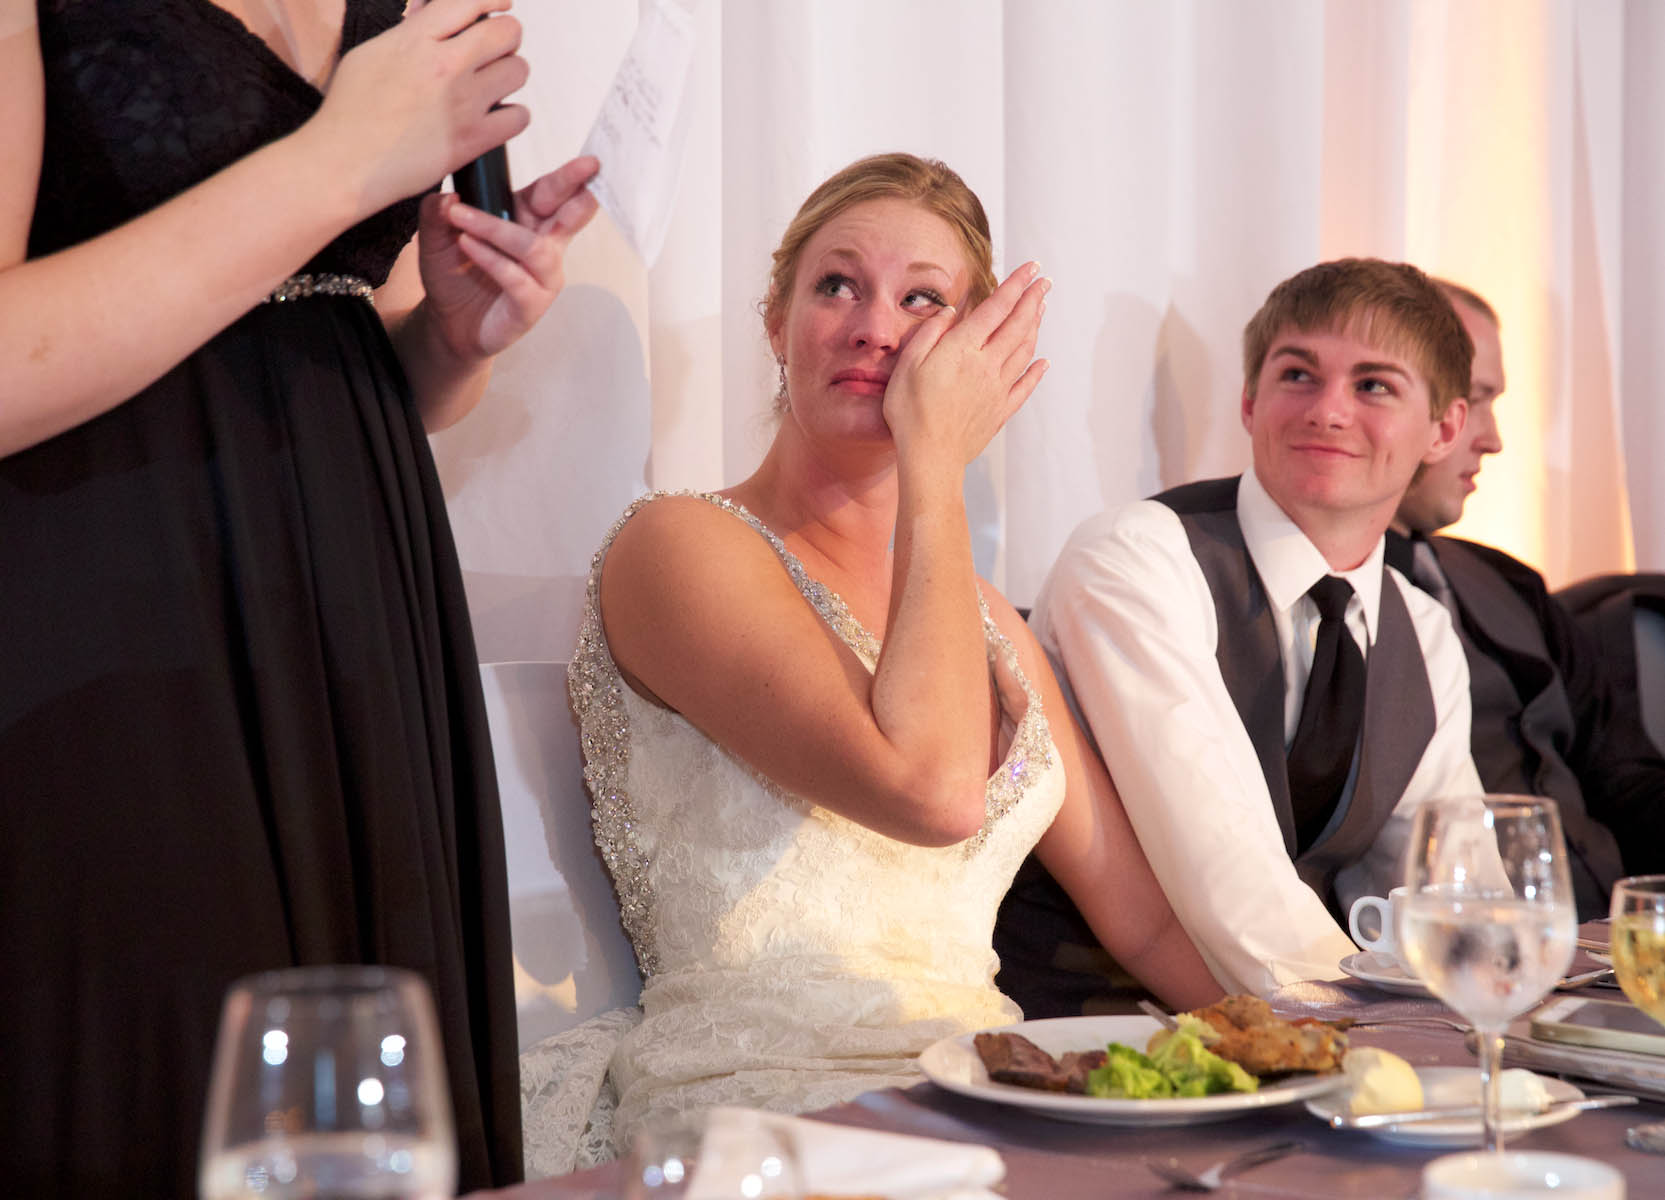 Jaclyn reacts to a toast from her sister (and maid of honor) during the wedding reception at iHotel, Champaign. Wedding photography by Tiffany & Steve of Warmowski Photography.